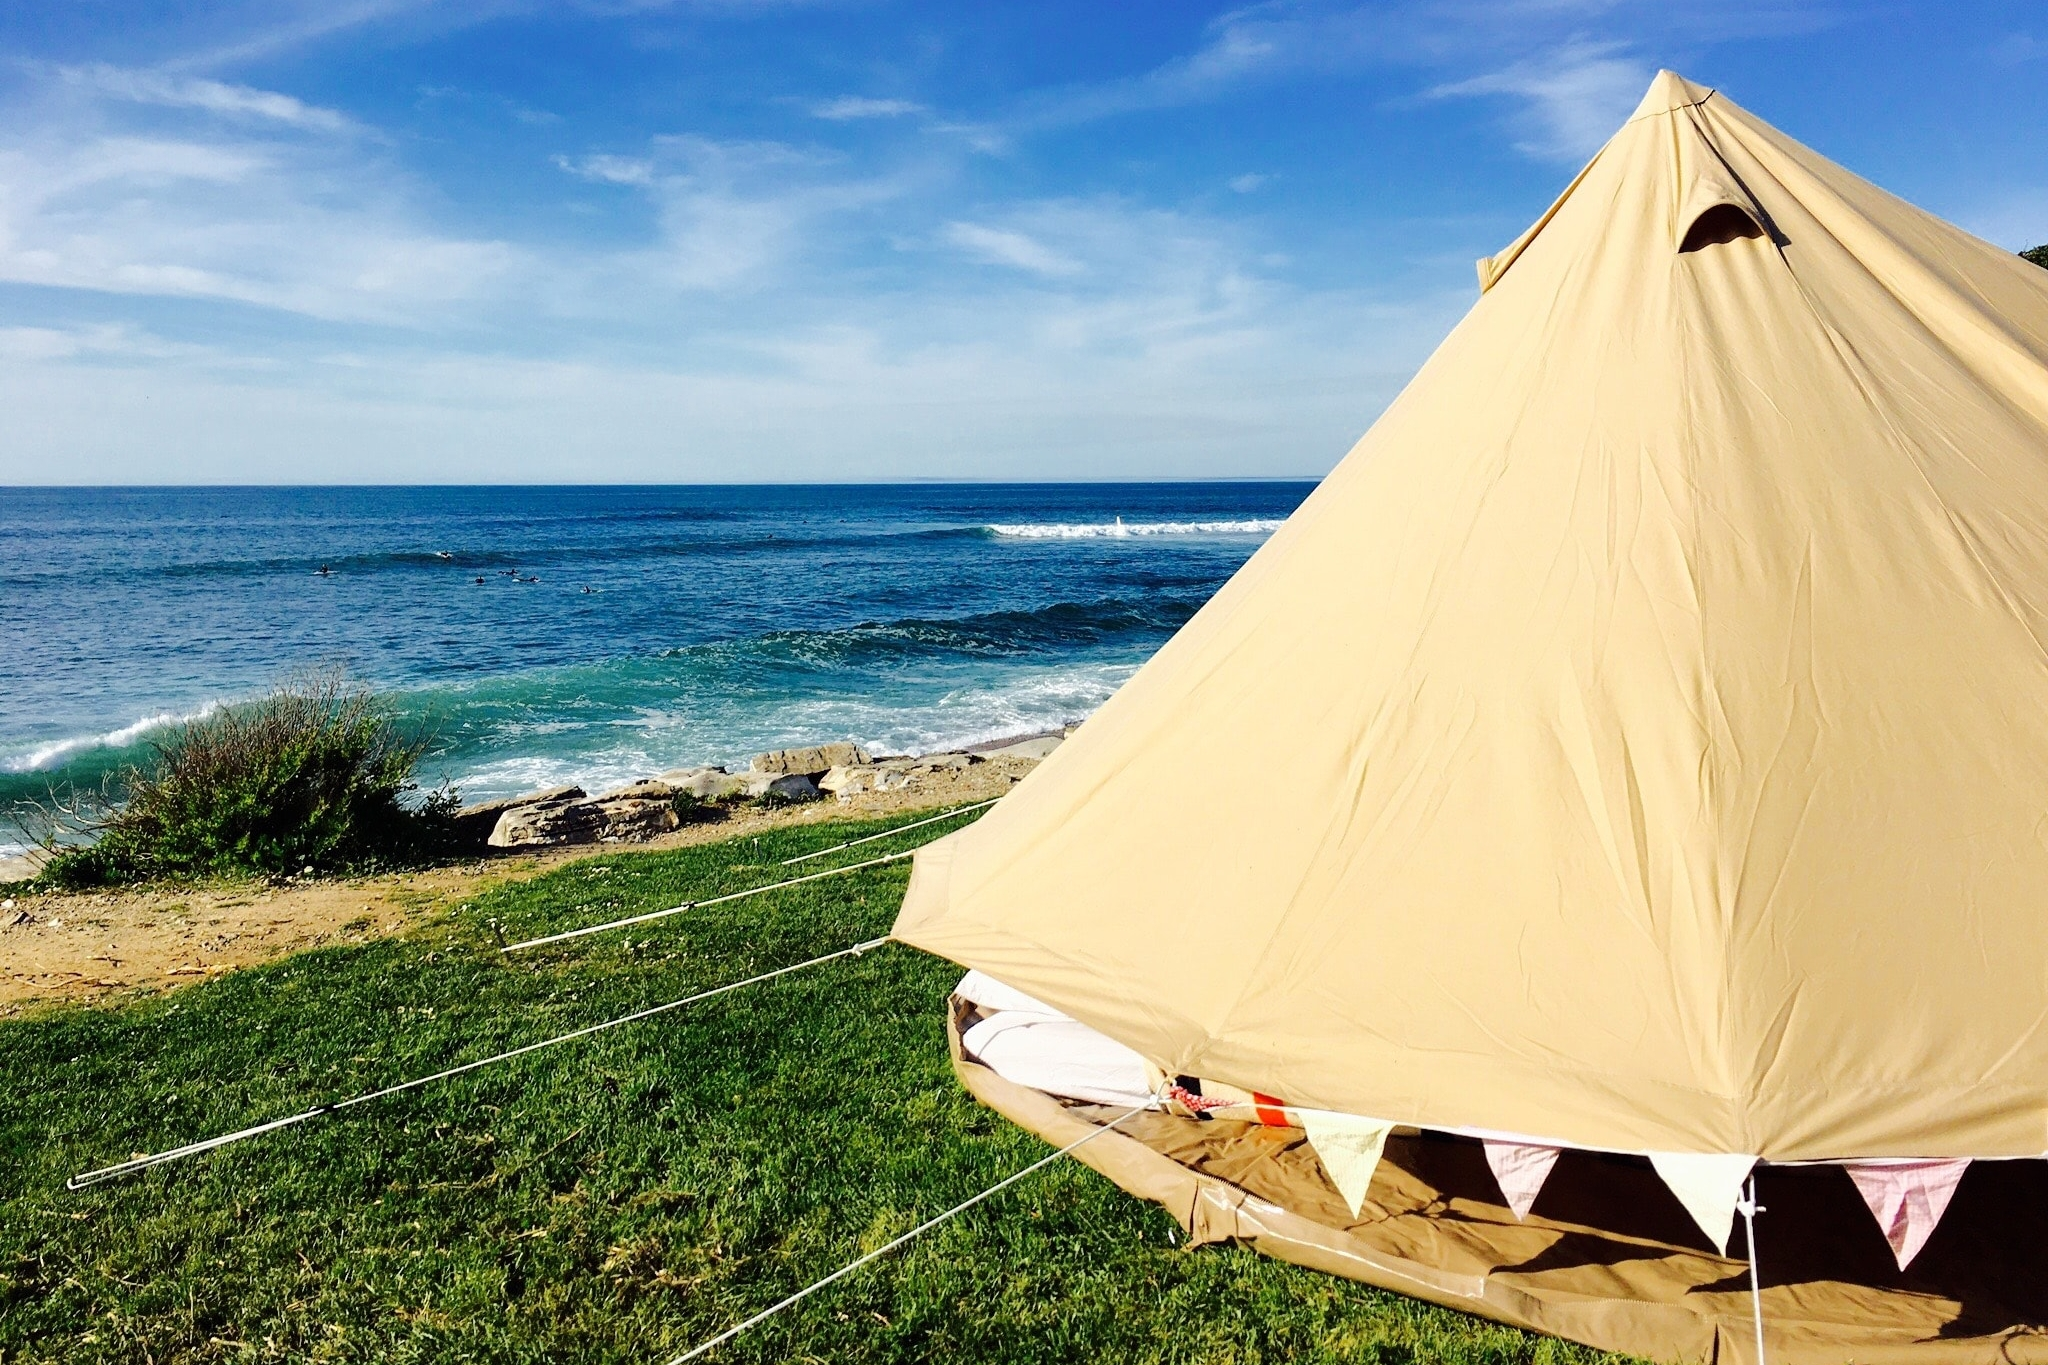 SNAZZY-CAMP-BIARRITZ-ACCOMMODATION-BASQUE-COUNTRY-CAMPING-GLAMPING-FRANCE-HOLIDAYS (3).jpg